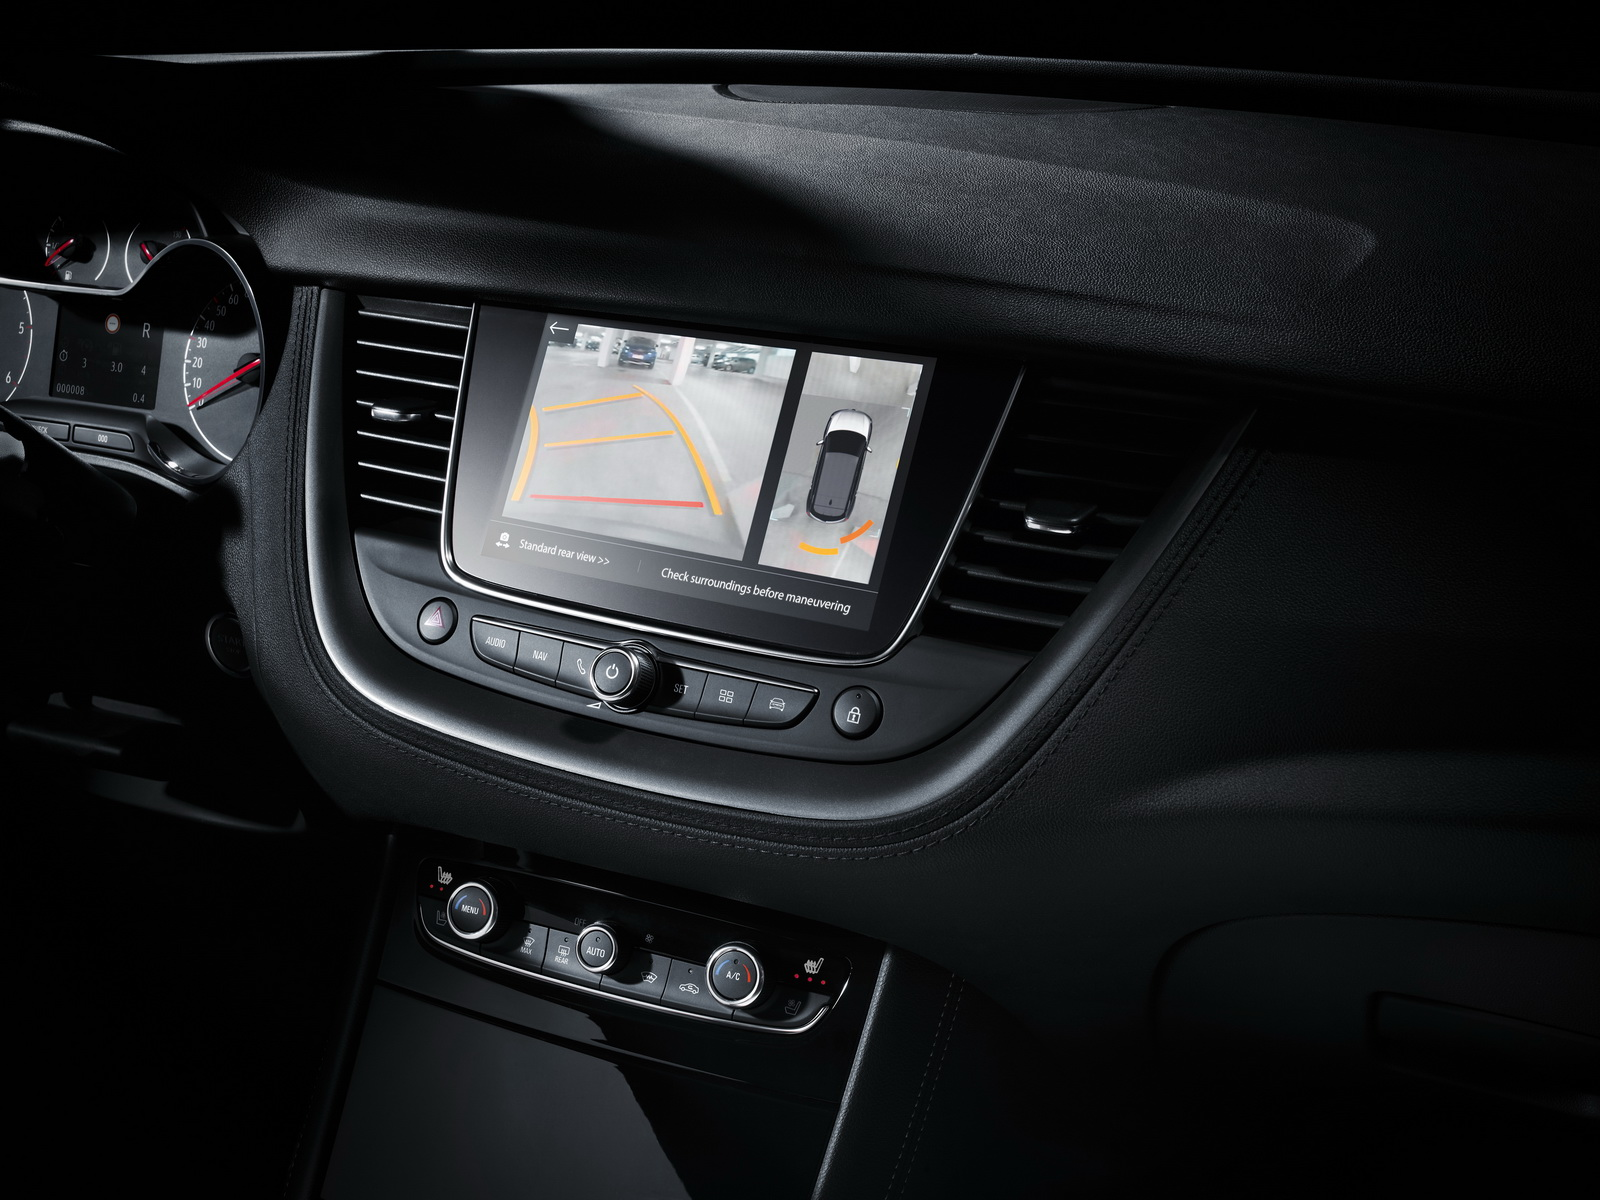 Opel Grandland X Ultimate: The premium equipment level includes assistant systems such as 360 degree camera and automatic Park Assist.